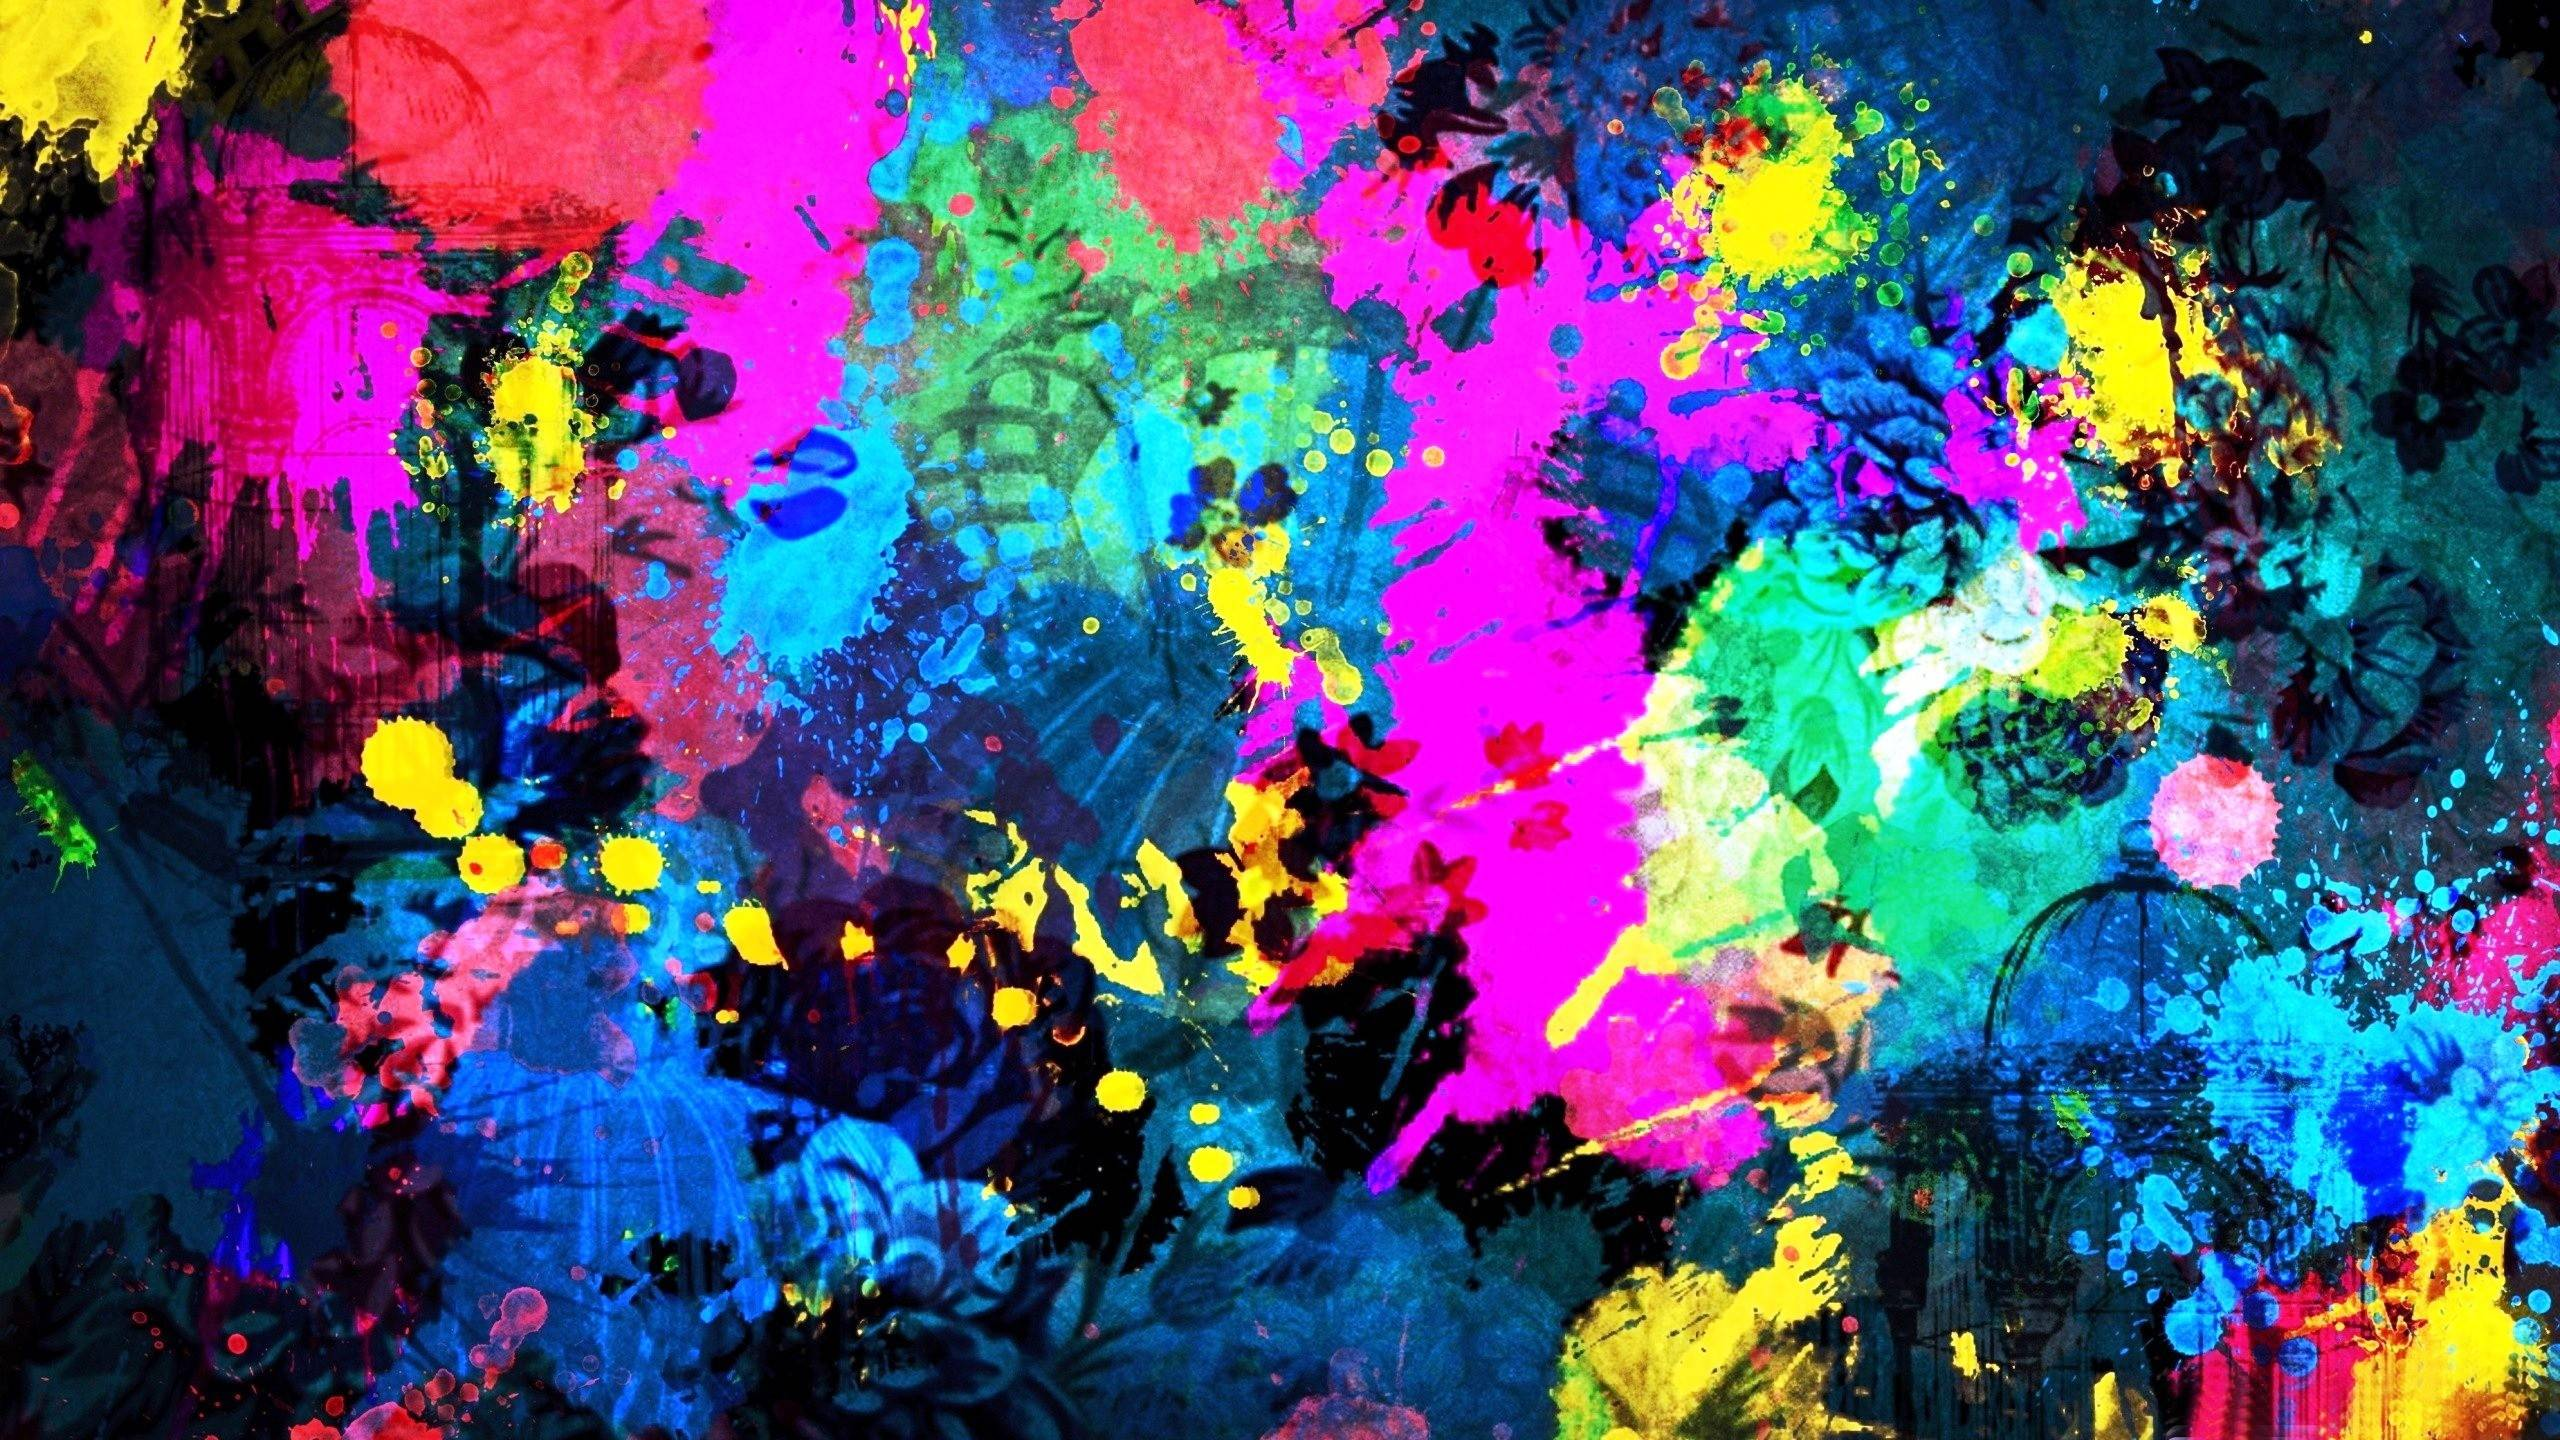 abstract art backgrounds - photo #7